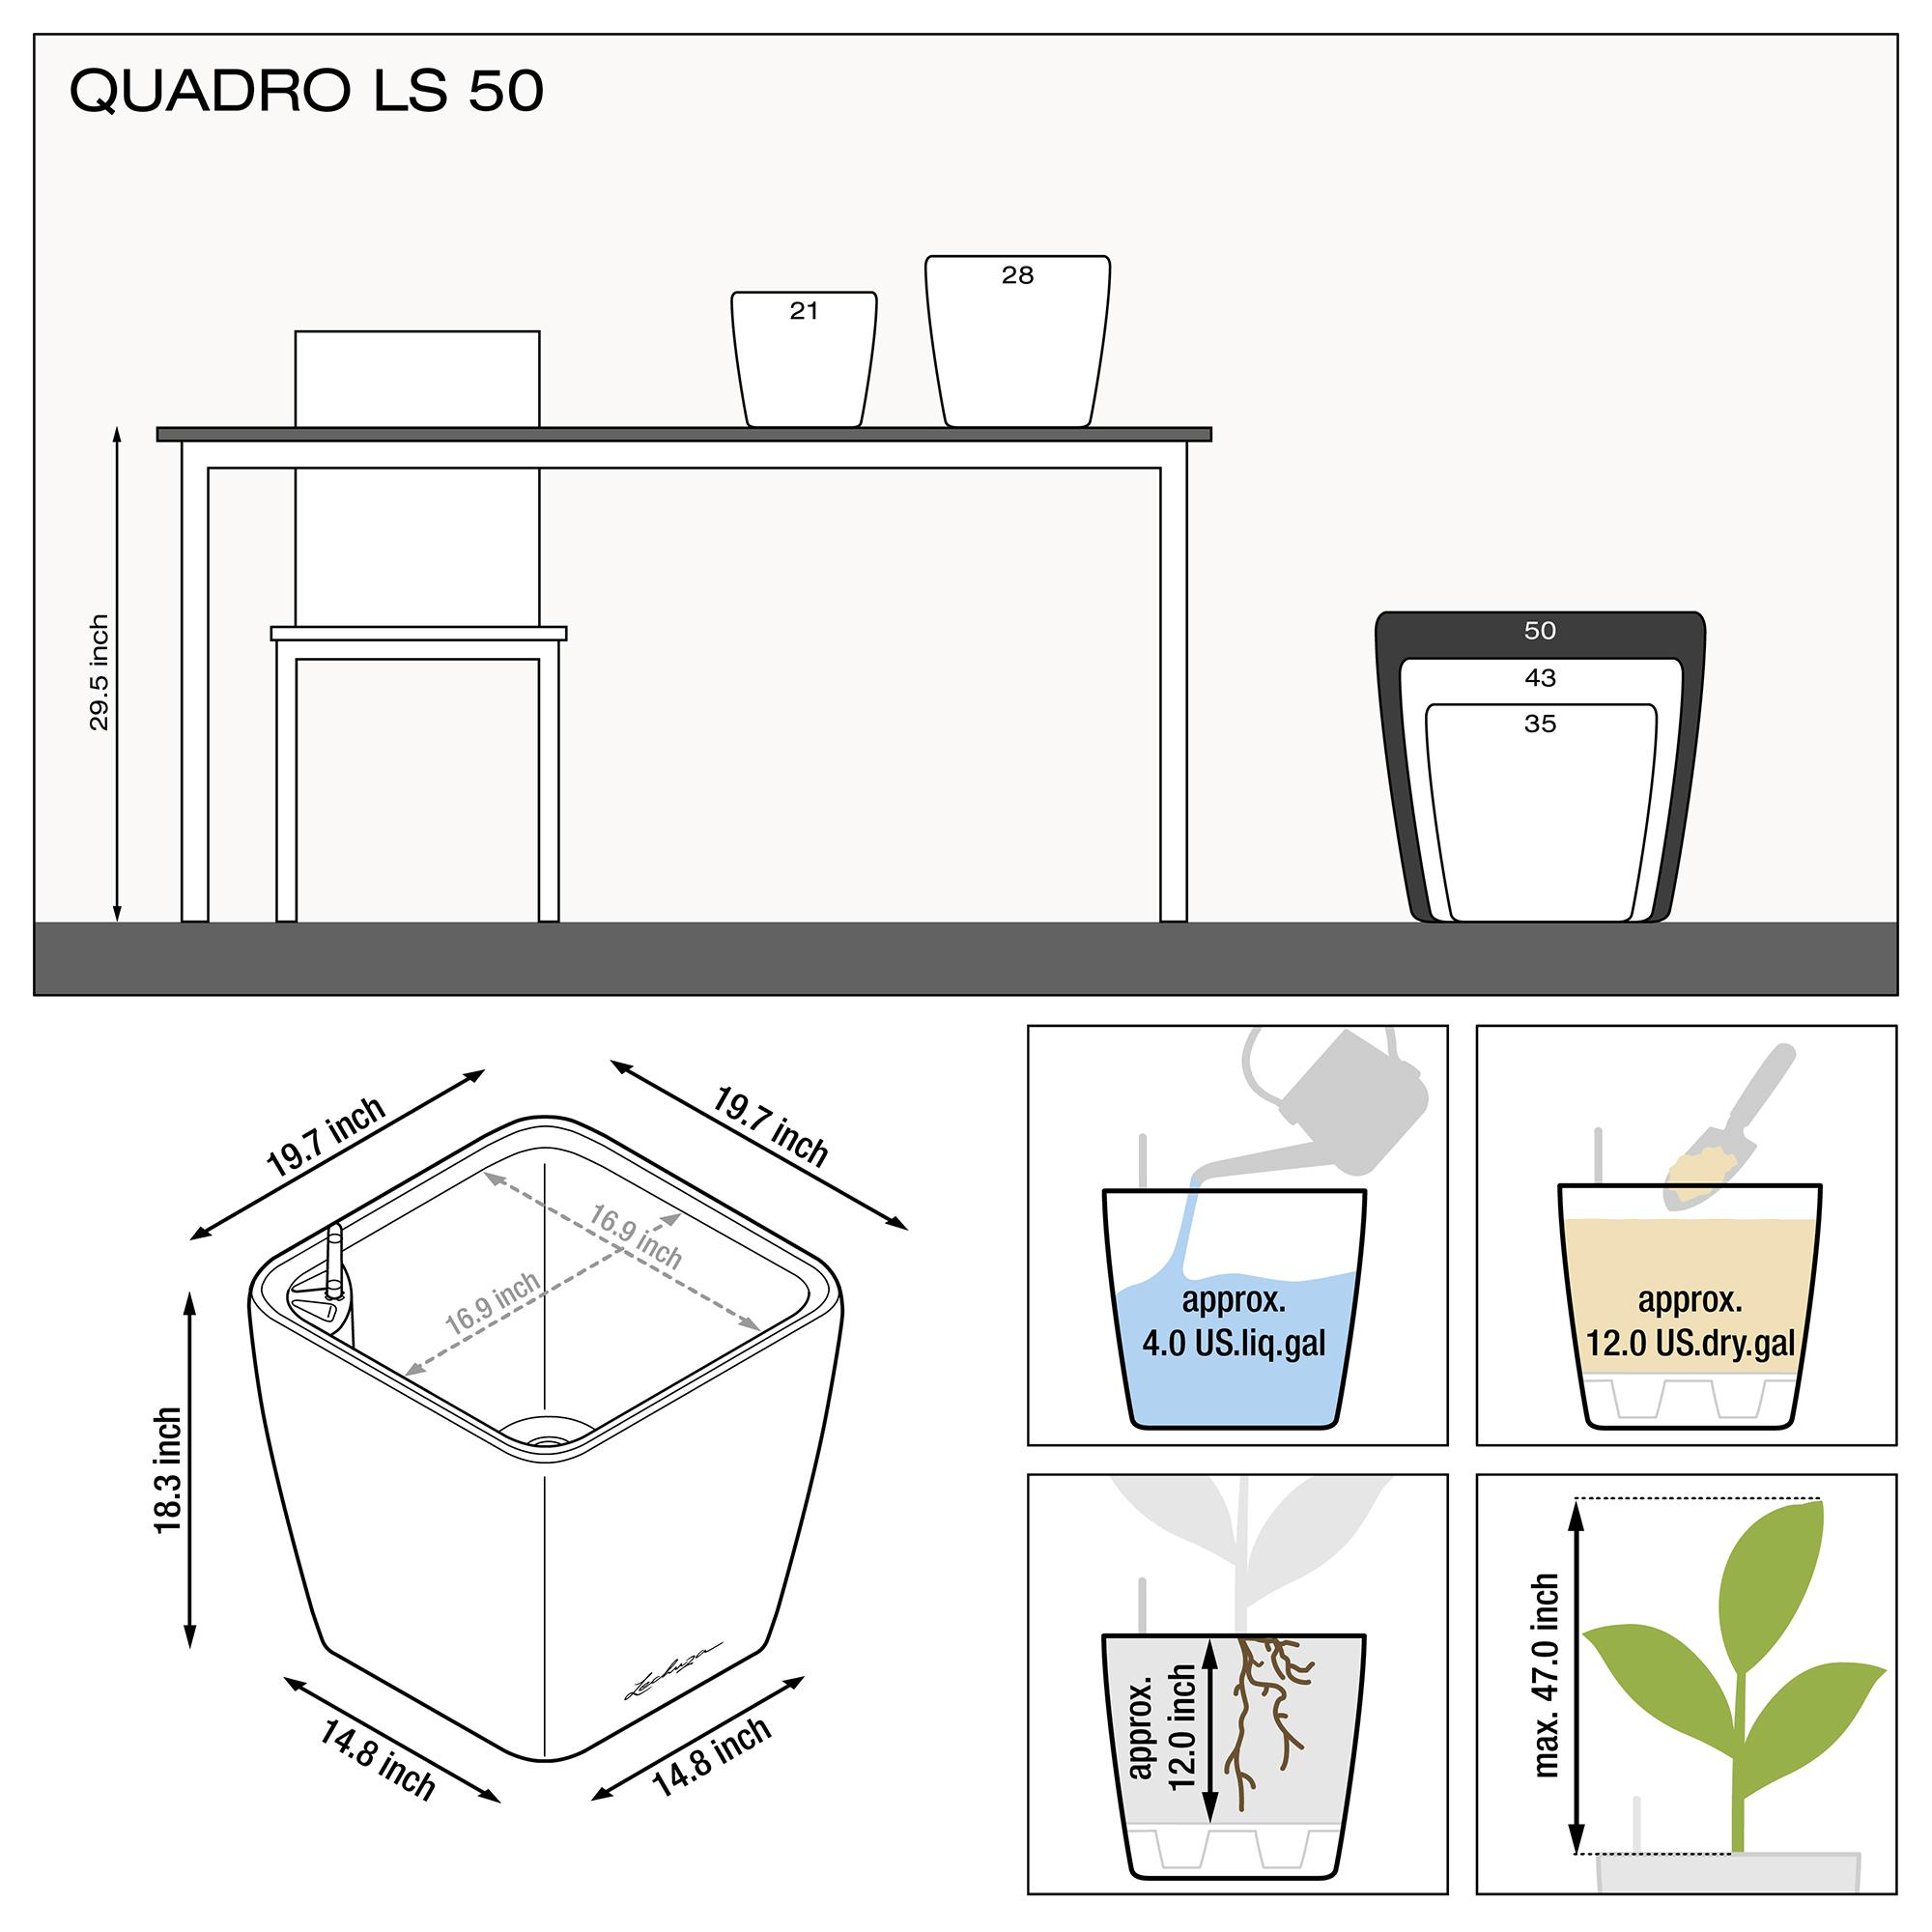 le_quadro-ls50_product_addi_nz_us